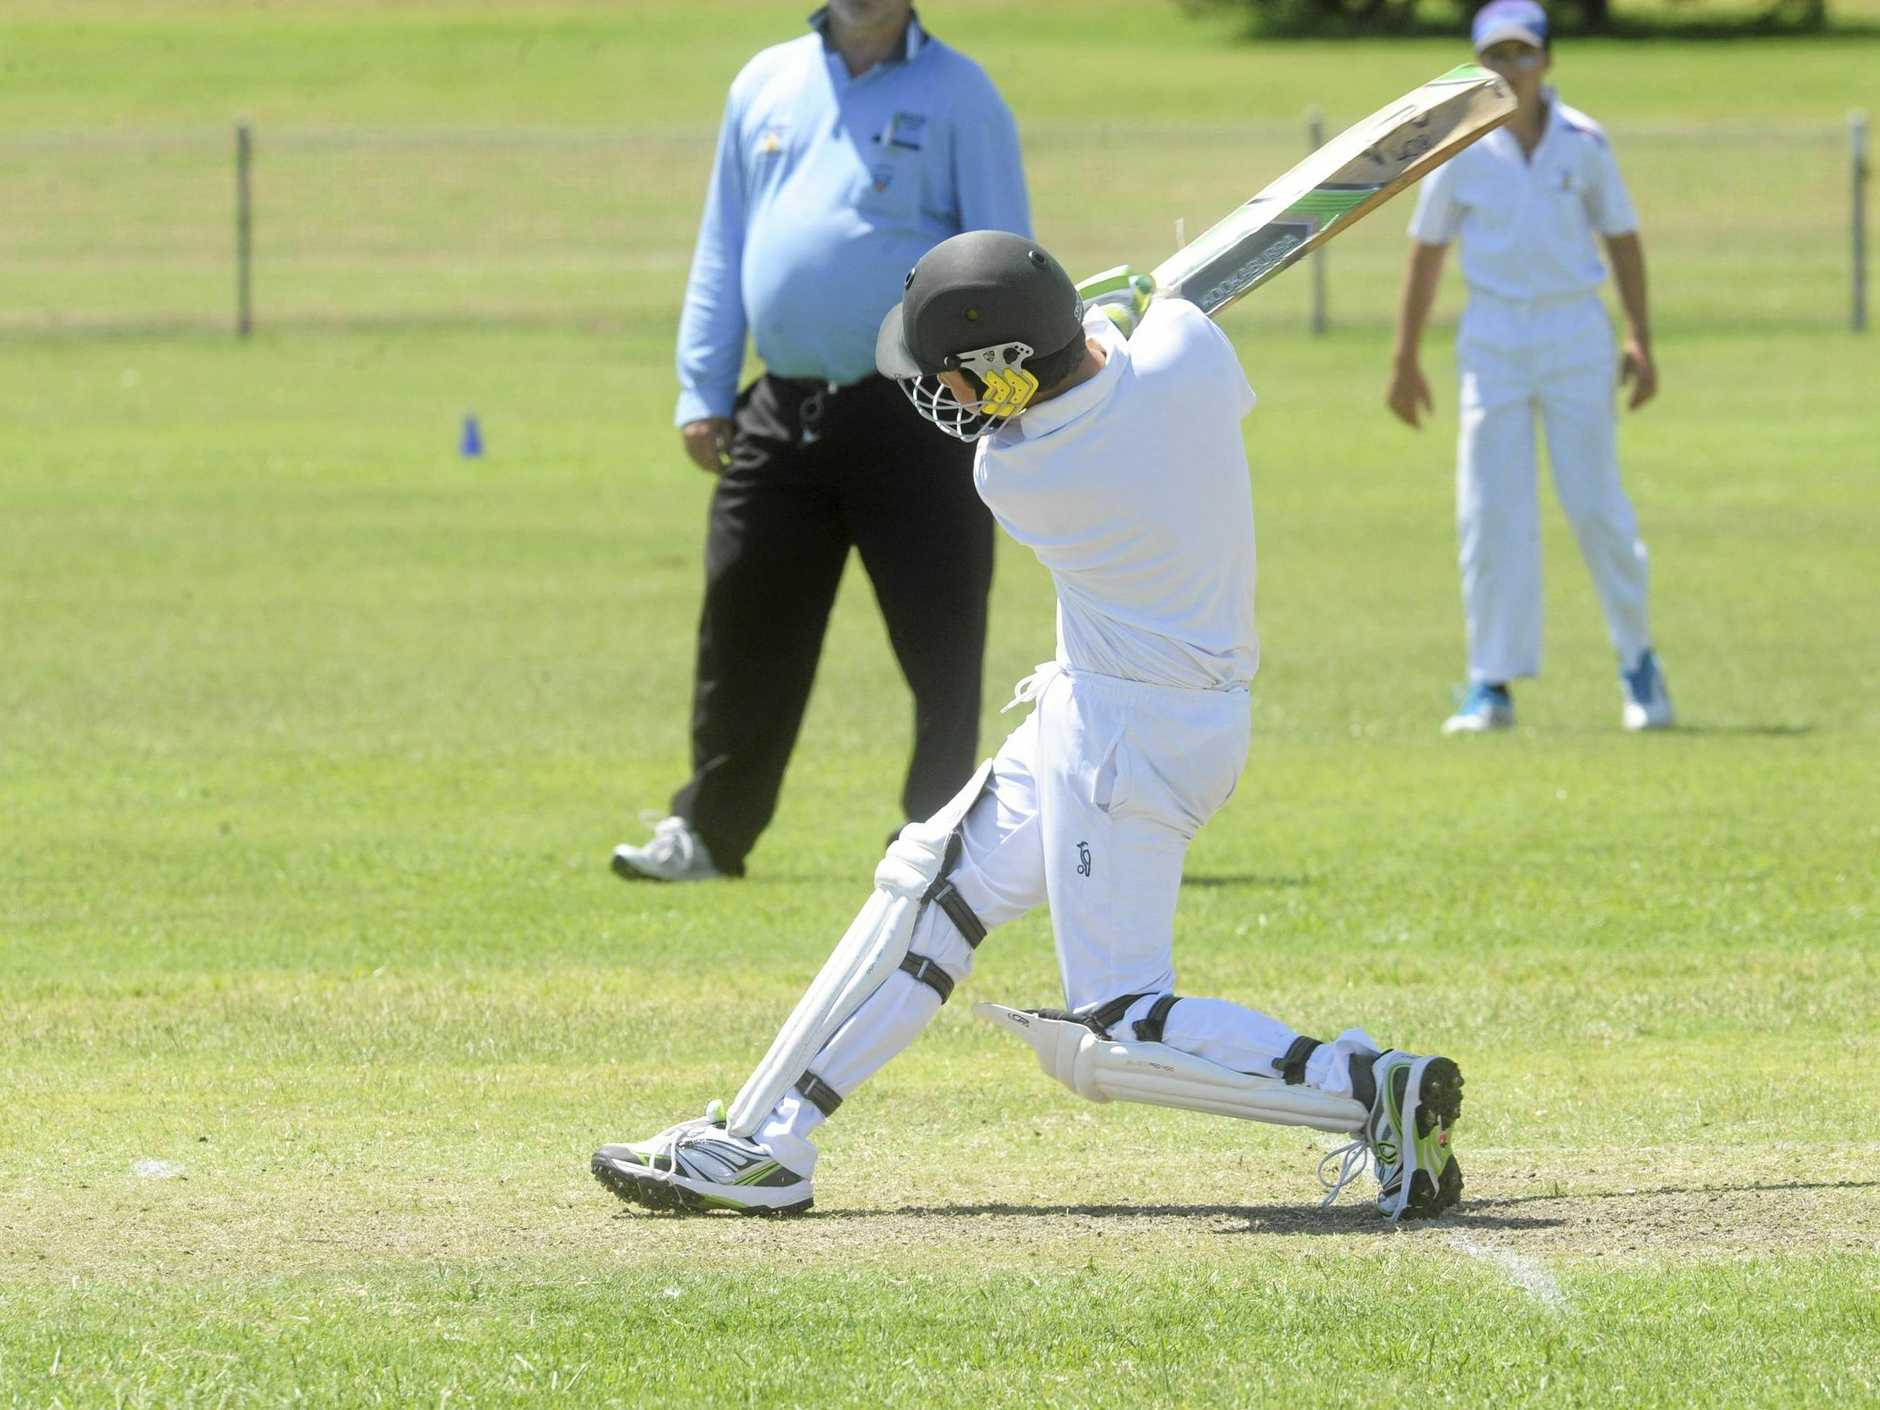 Troy Turner batting for Lower Clarence in the North Coast Cricket Council 2017/18 Inter-District Under-14 grand final between Lower Clarence and Nambucca Bellingen at Barry Watts Oval in Maclean on Sunday, 11th February, 2017.Photo Bill North / Daily Examiner